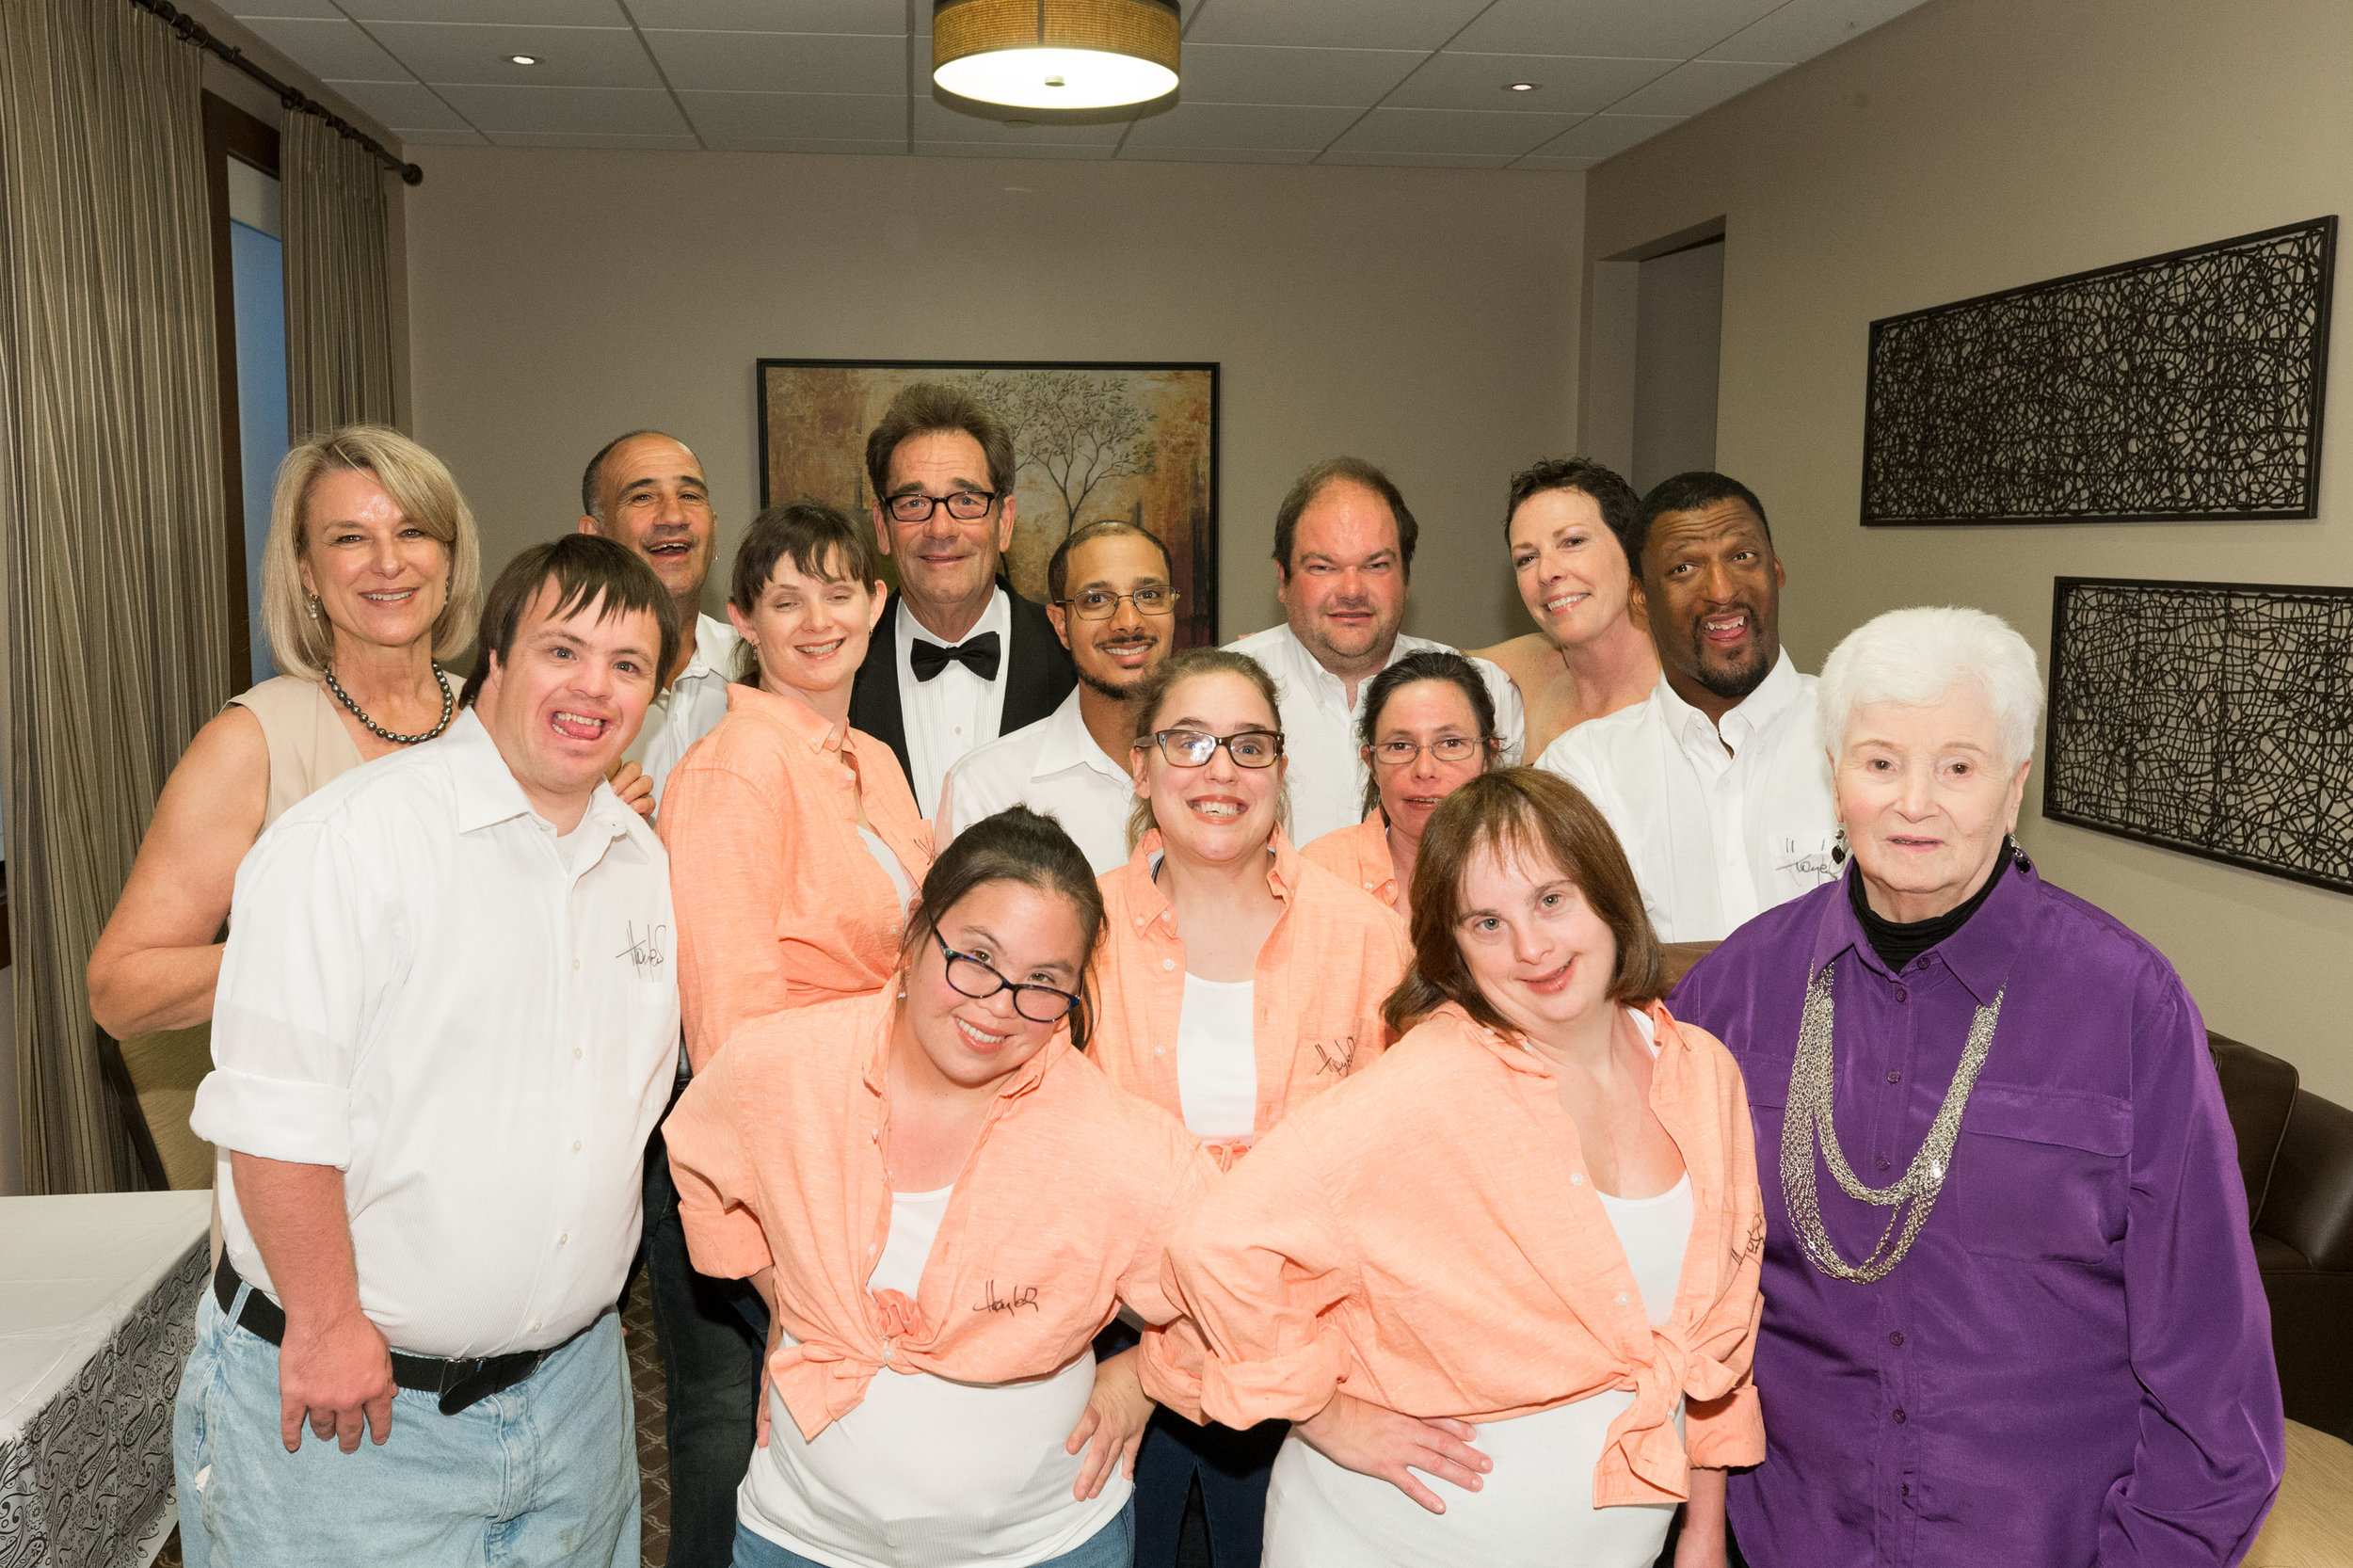 2017 Performance Group with Nancy Dow Moody, Huey Lewis, Sharon Sides, and Lois Press  Photo Credit: Drew Altizer